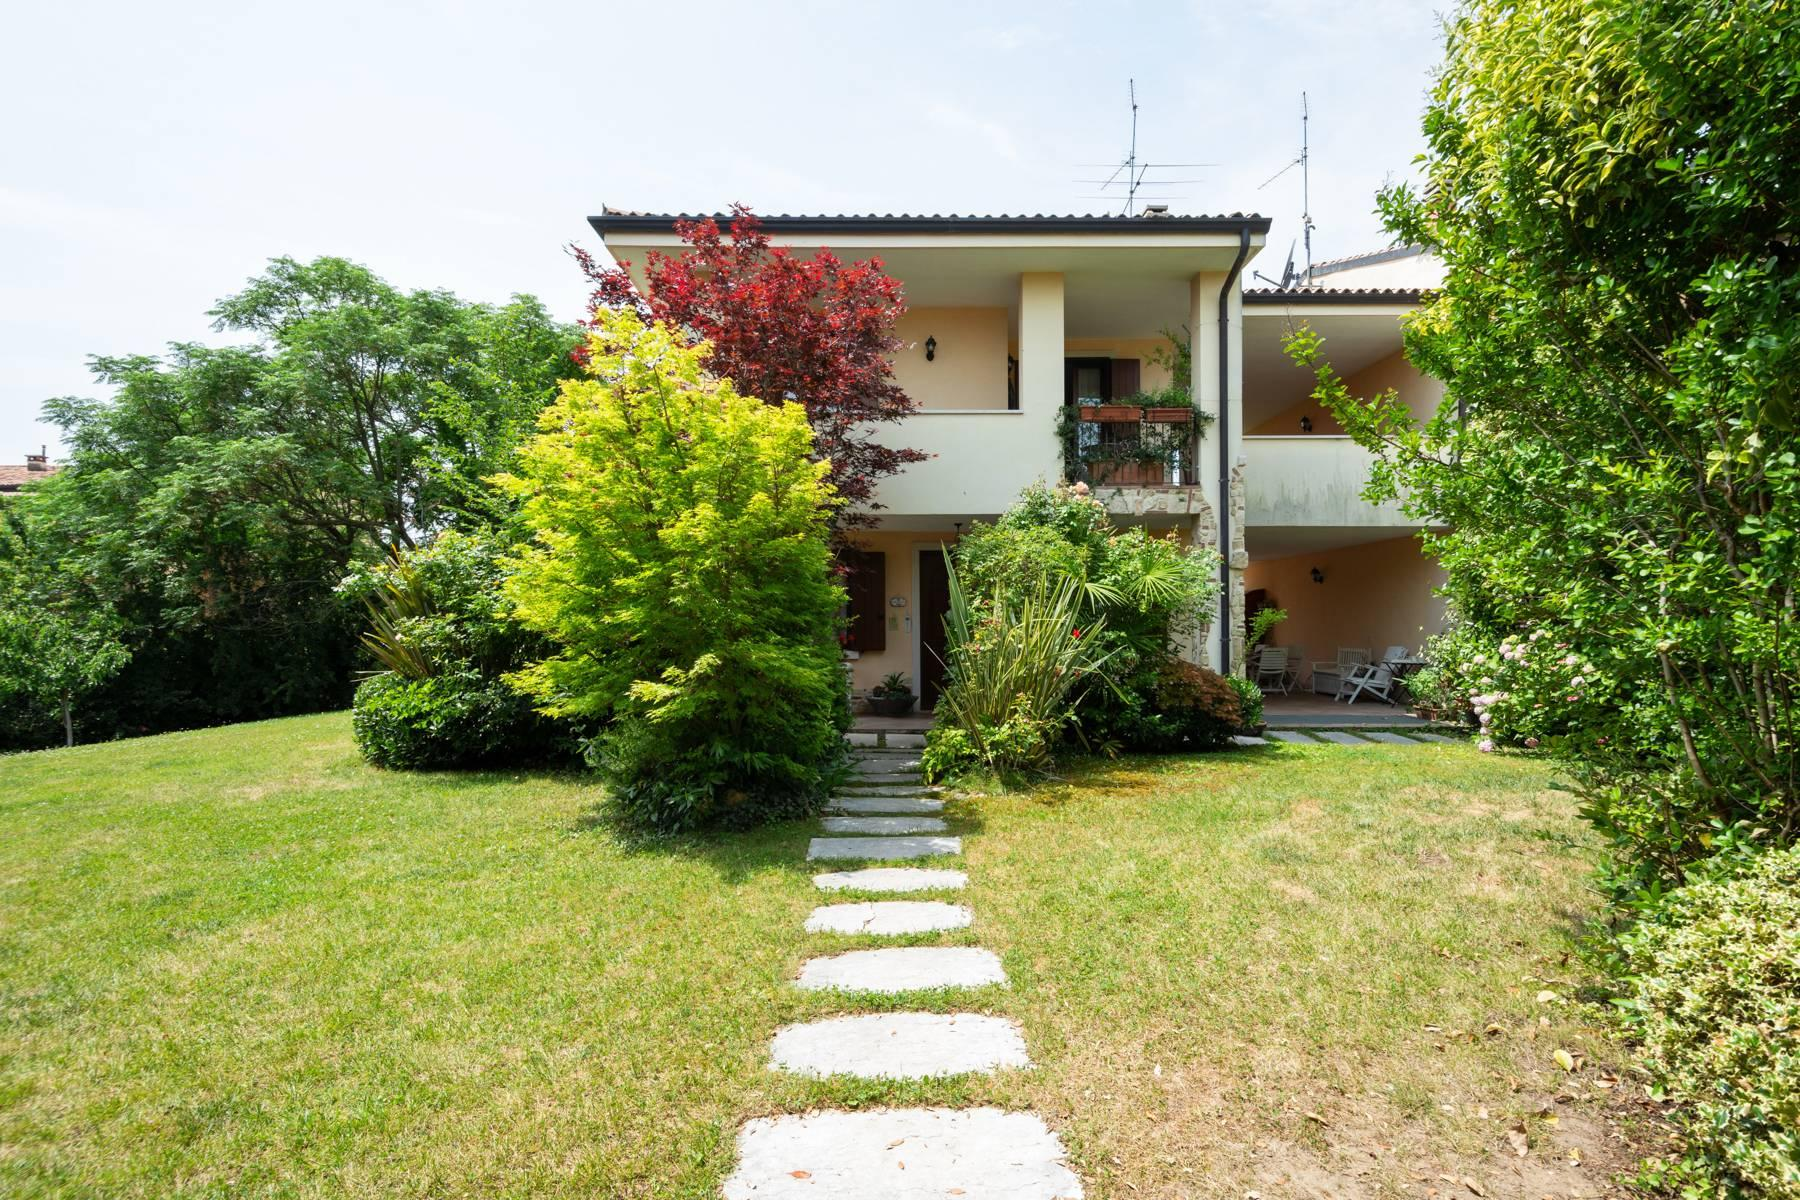 Independent villa with wide garden, just a few steps from the Lake - 2